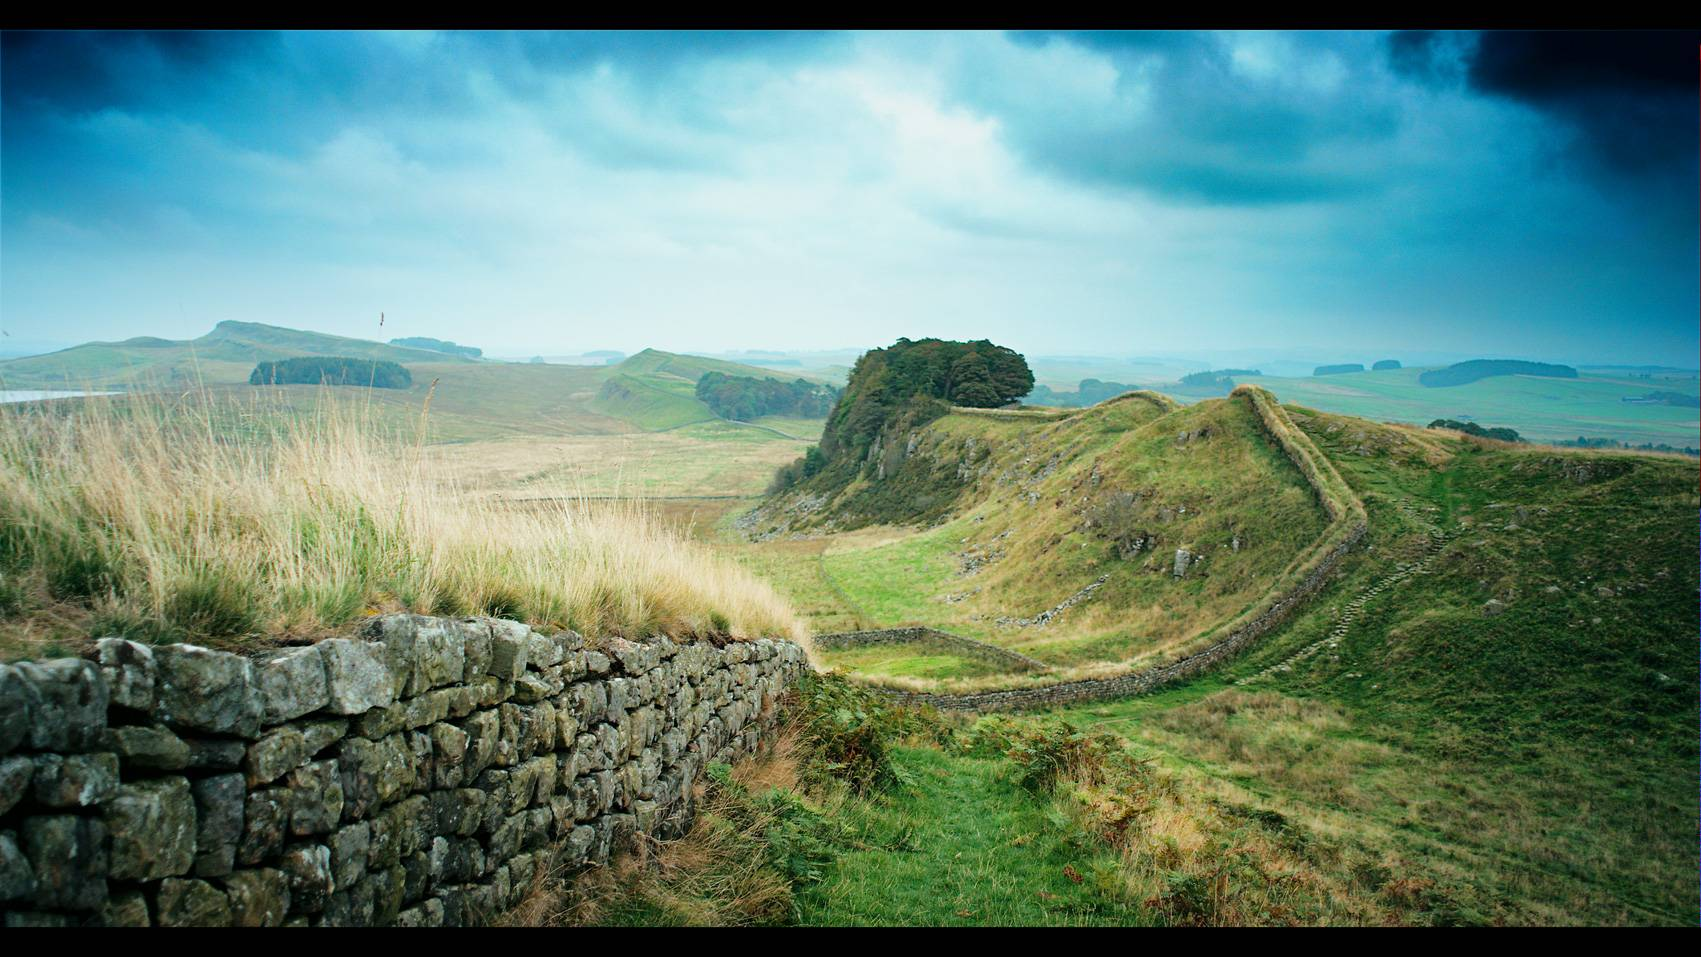 Rugby World Cup TV ad still of Hadrian's Wall reclining across the countryside